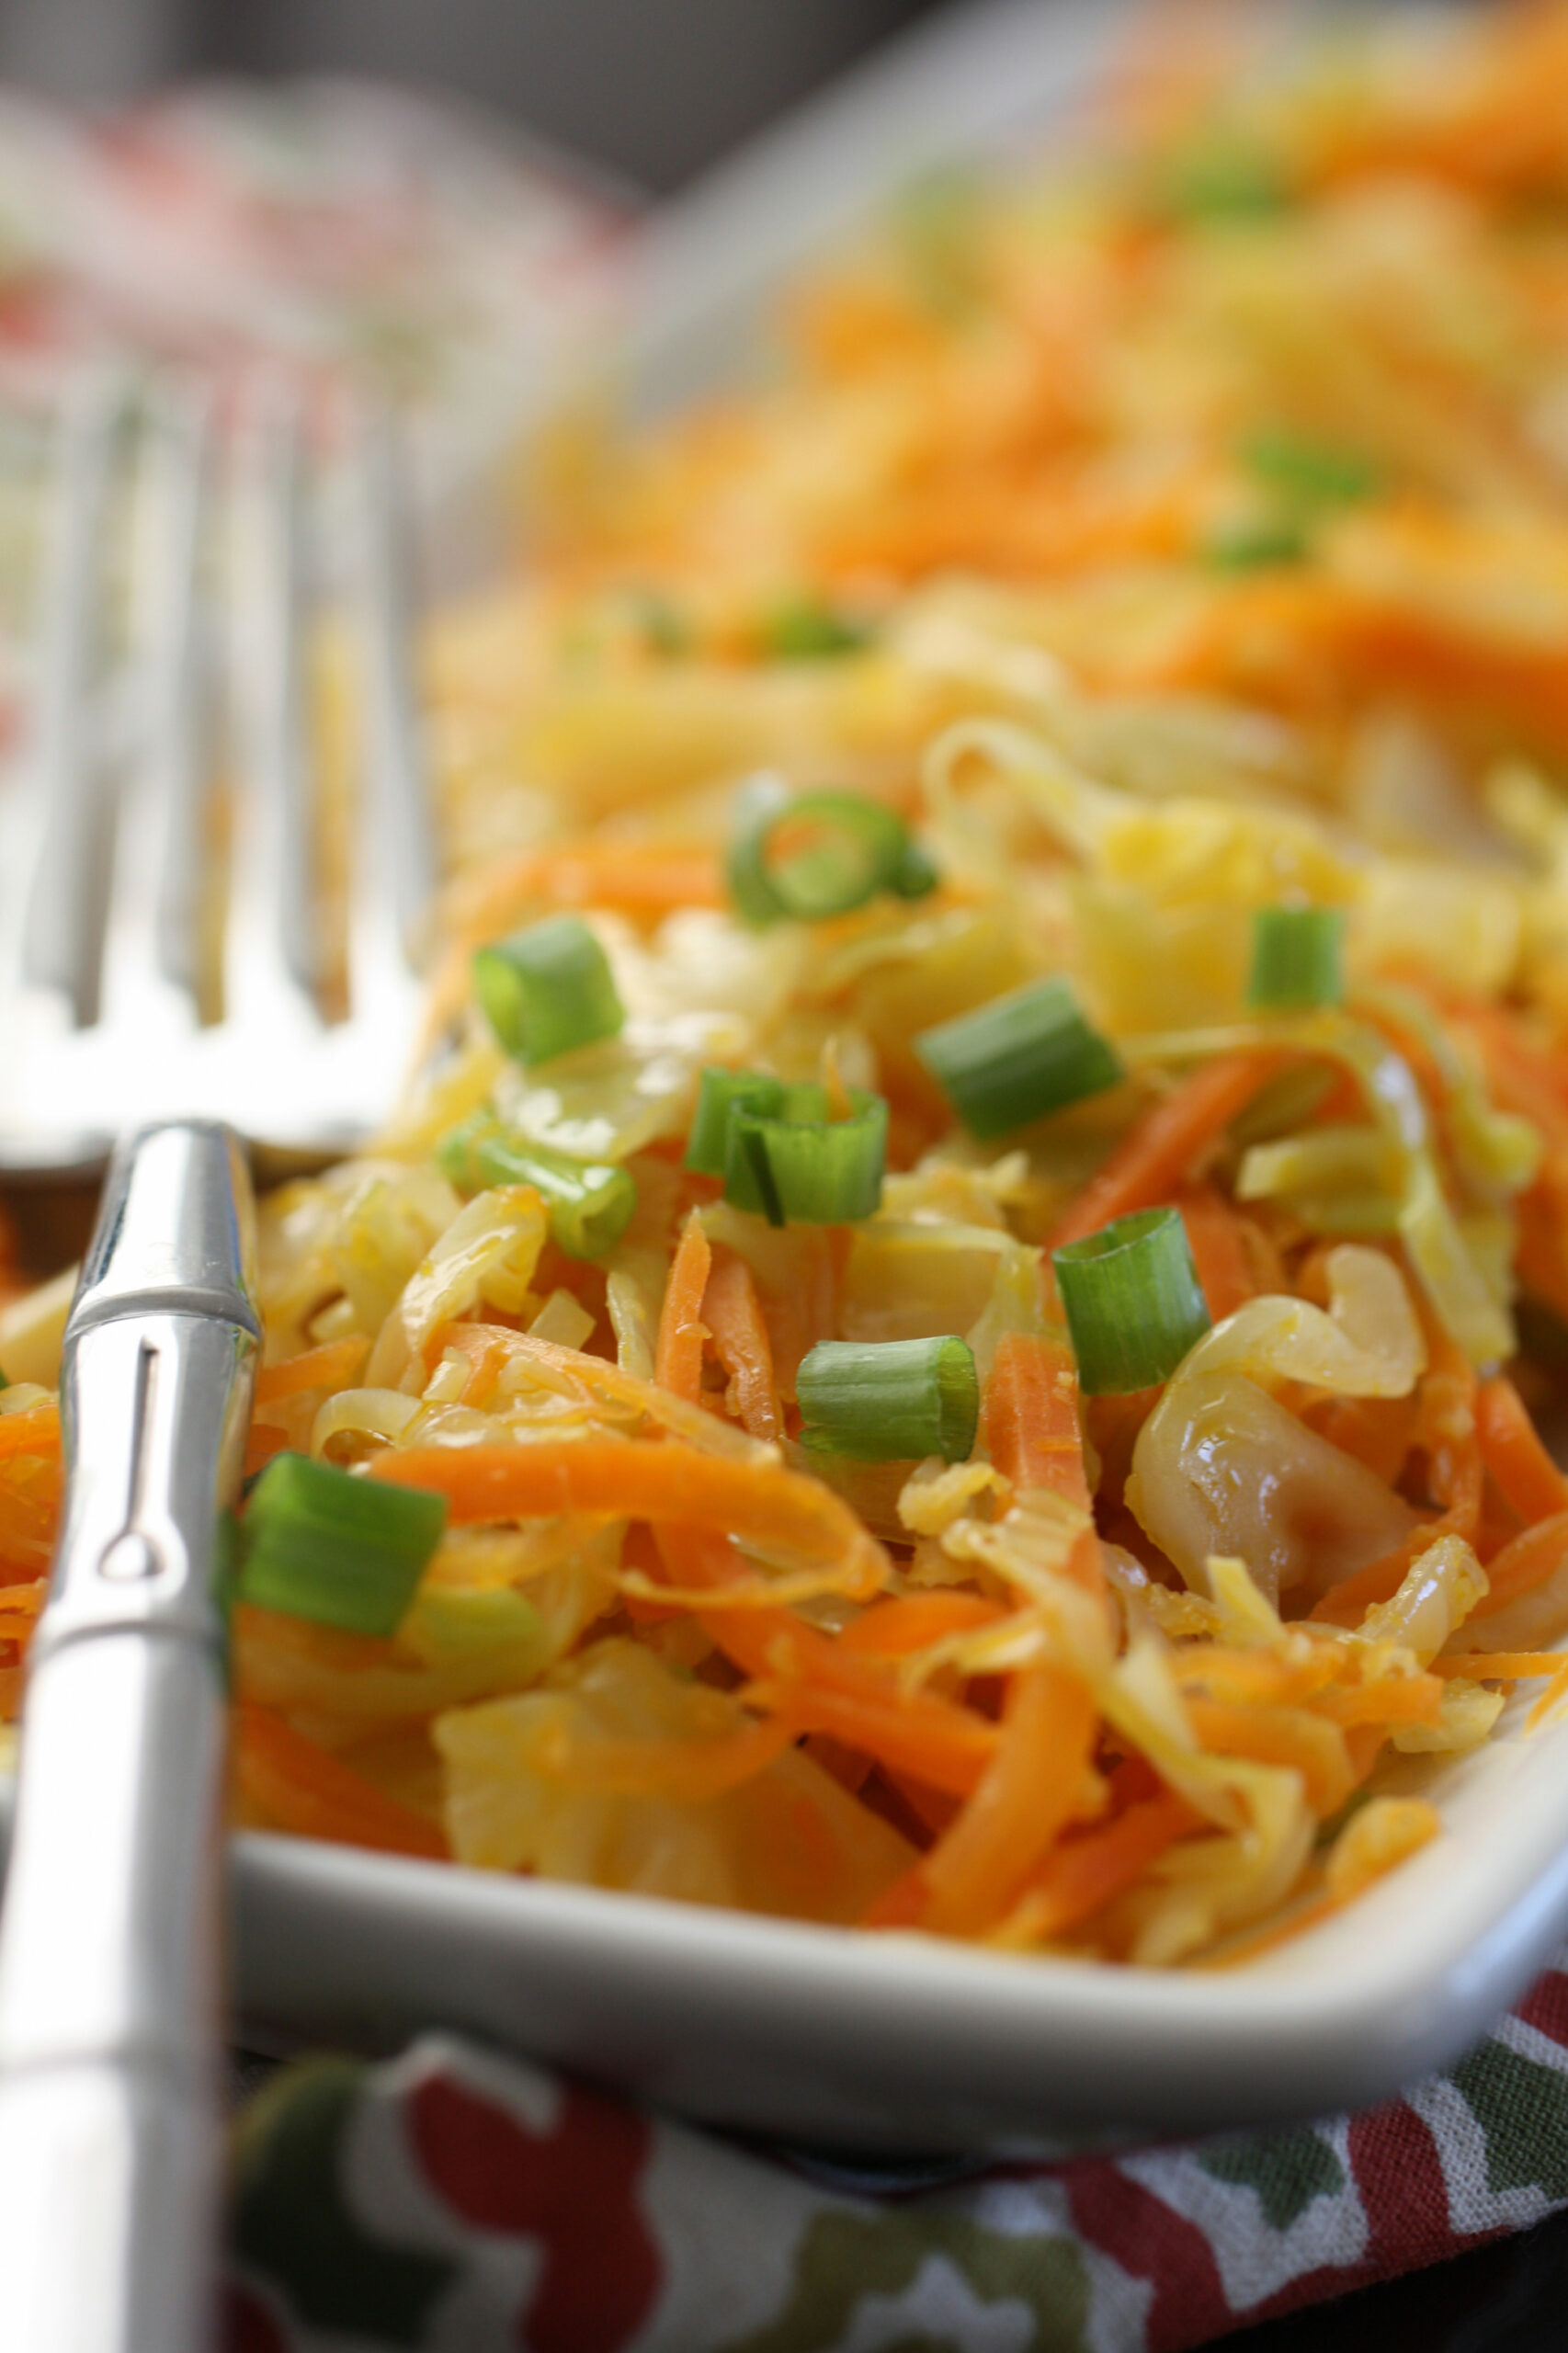 Ginger Fried Cabbage and Carrots (AIP, Paleo, Vegan) - cabbage recipes vegetarian